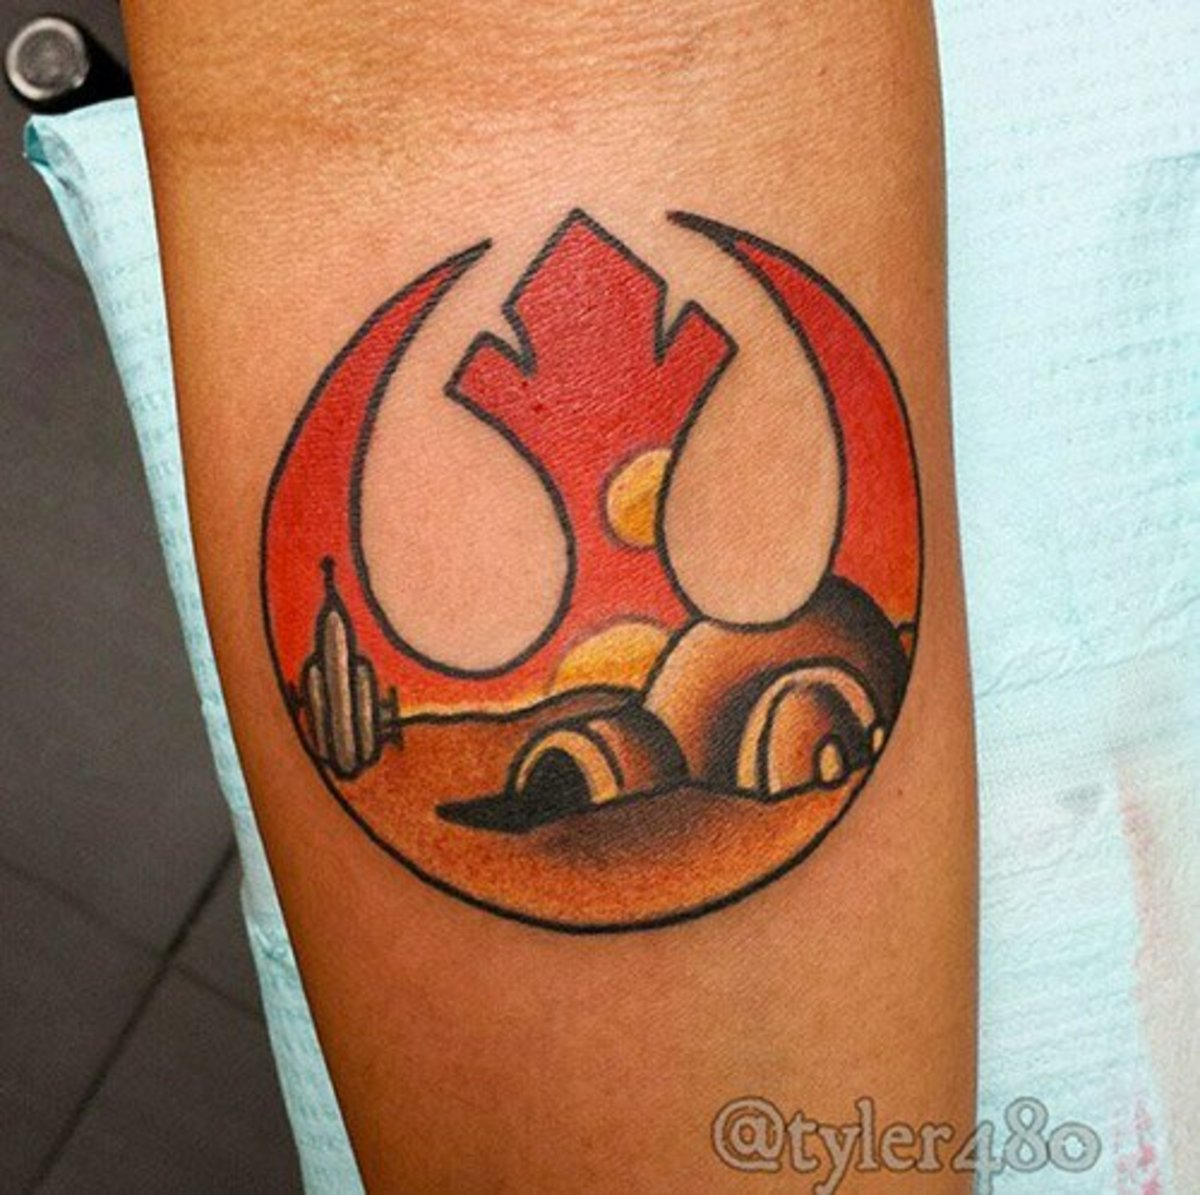 A rebel alliance/Tatooine piece by Nealeigh.